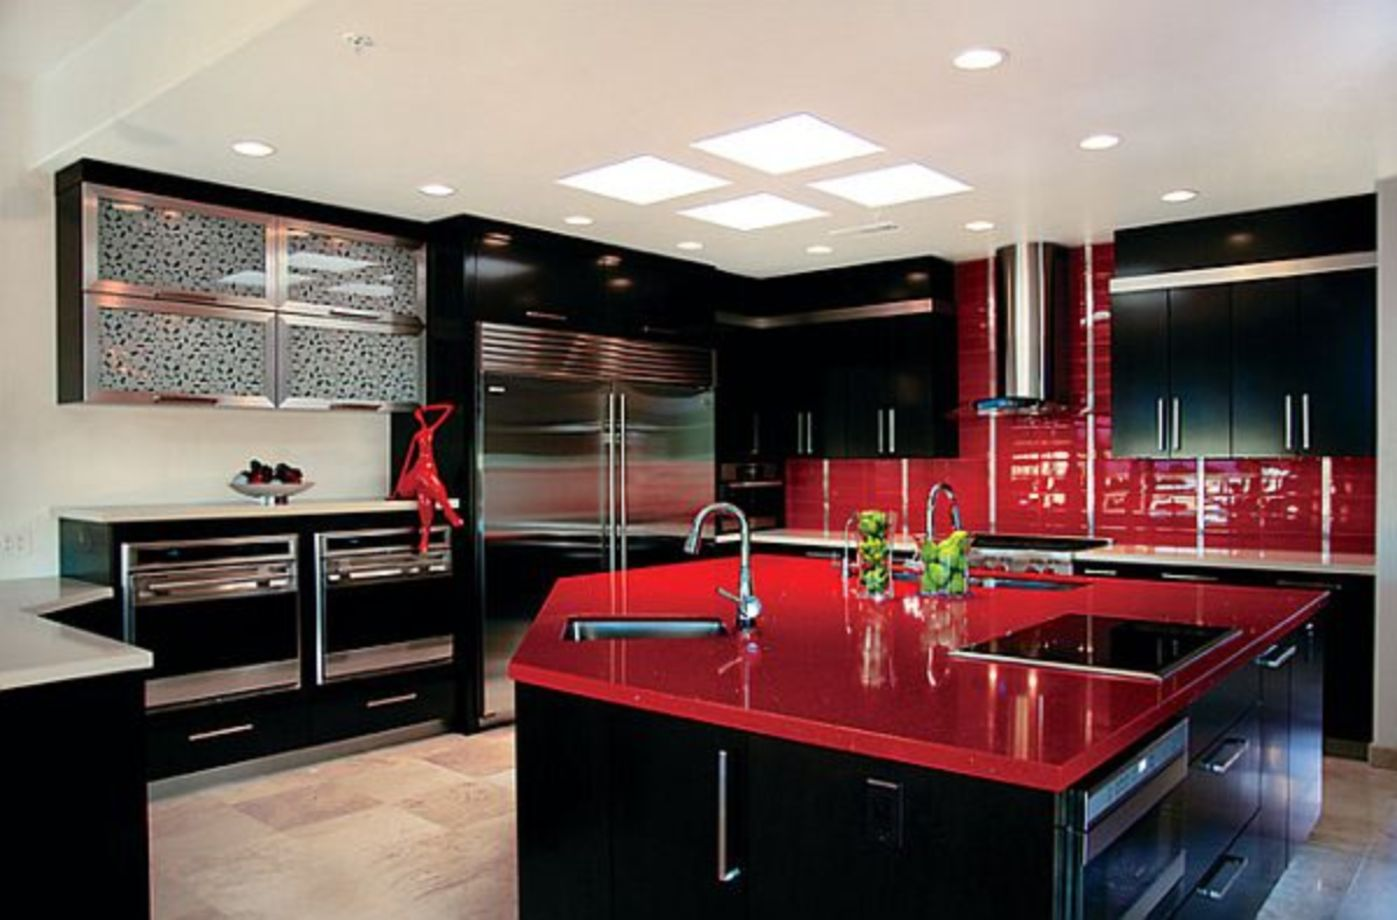 64 Amazing Black and Red Kitchen Decor Ideas Suitable for You Who Loves Cooking